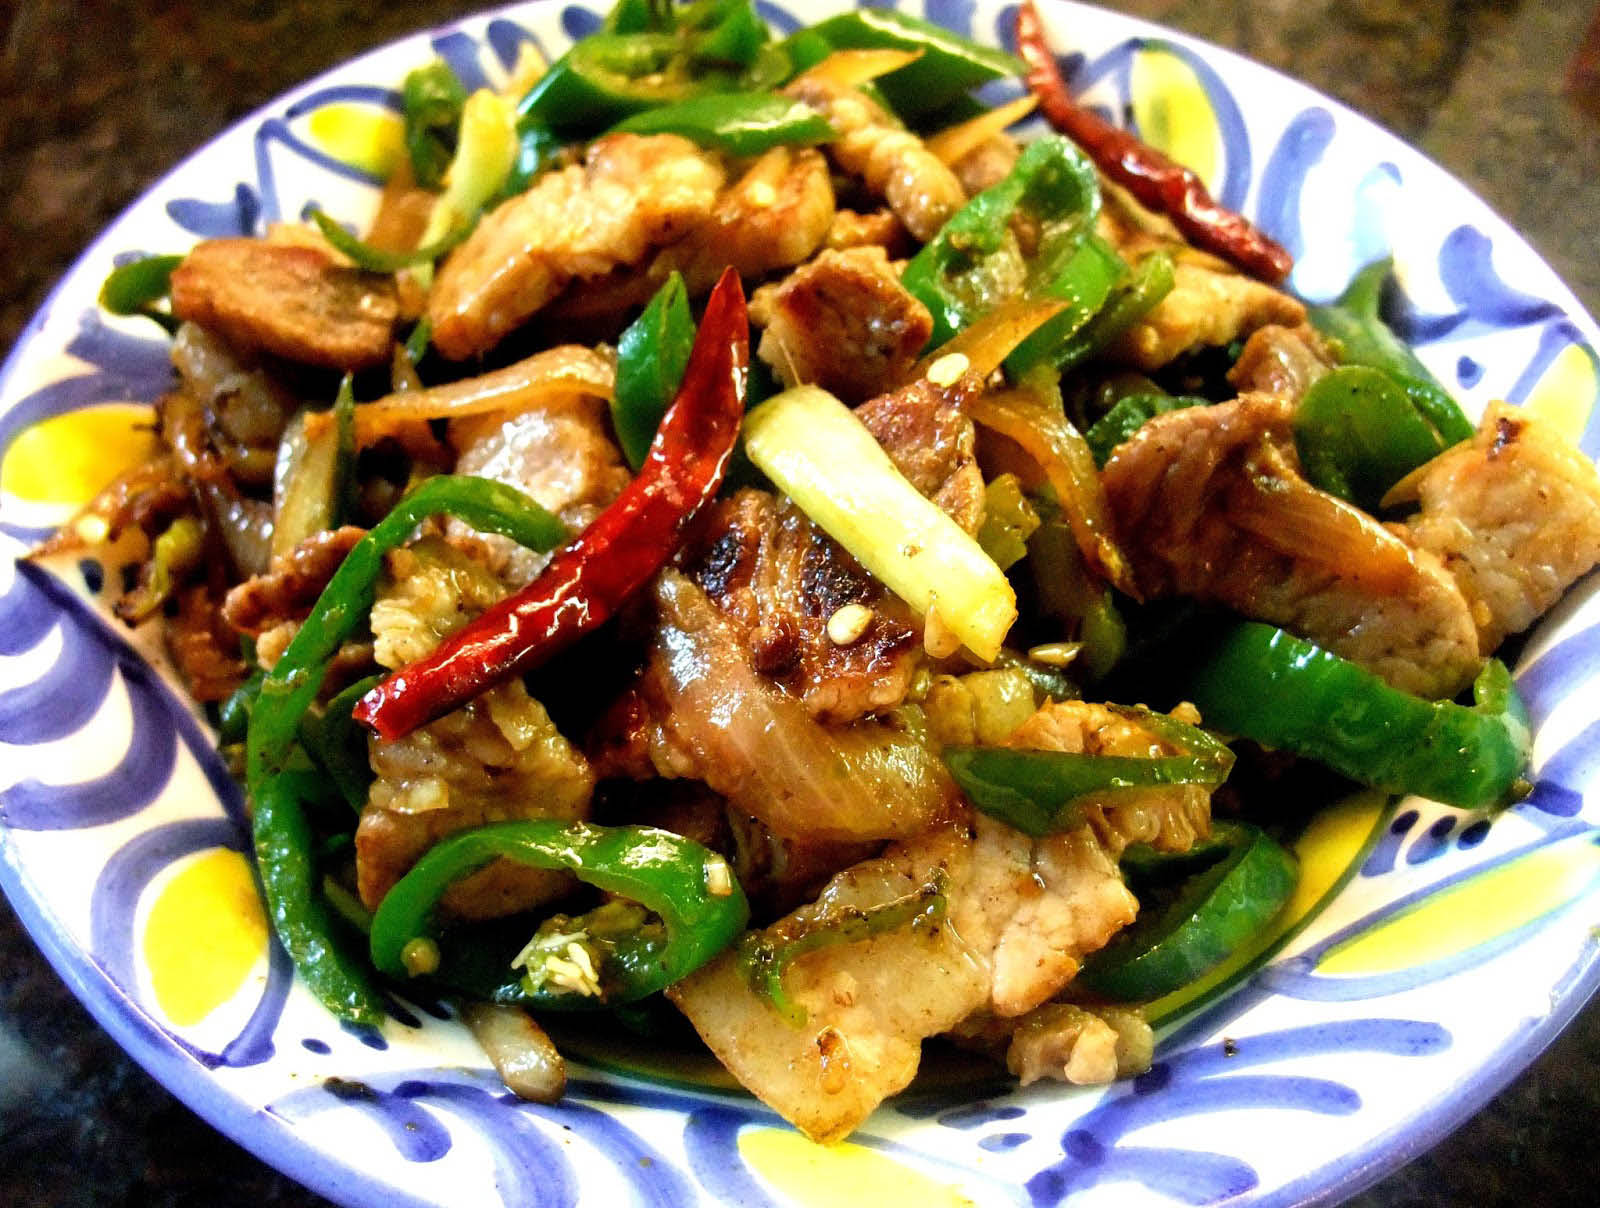 Chinese, fresh ingredients, take out, fast friendly delivery, online ordering, chicken, beef, pork, vegetarian